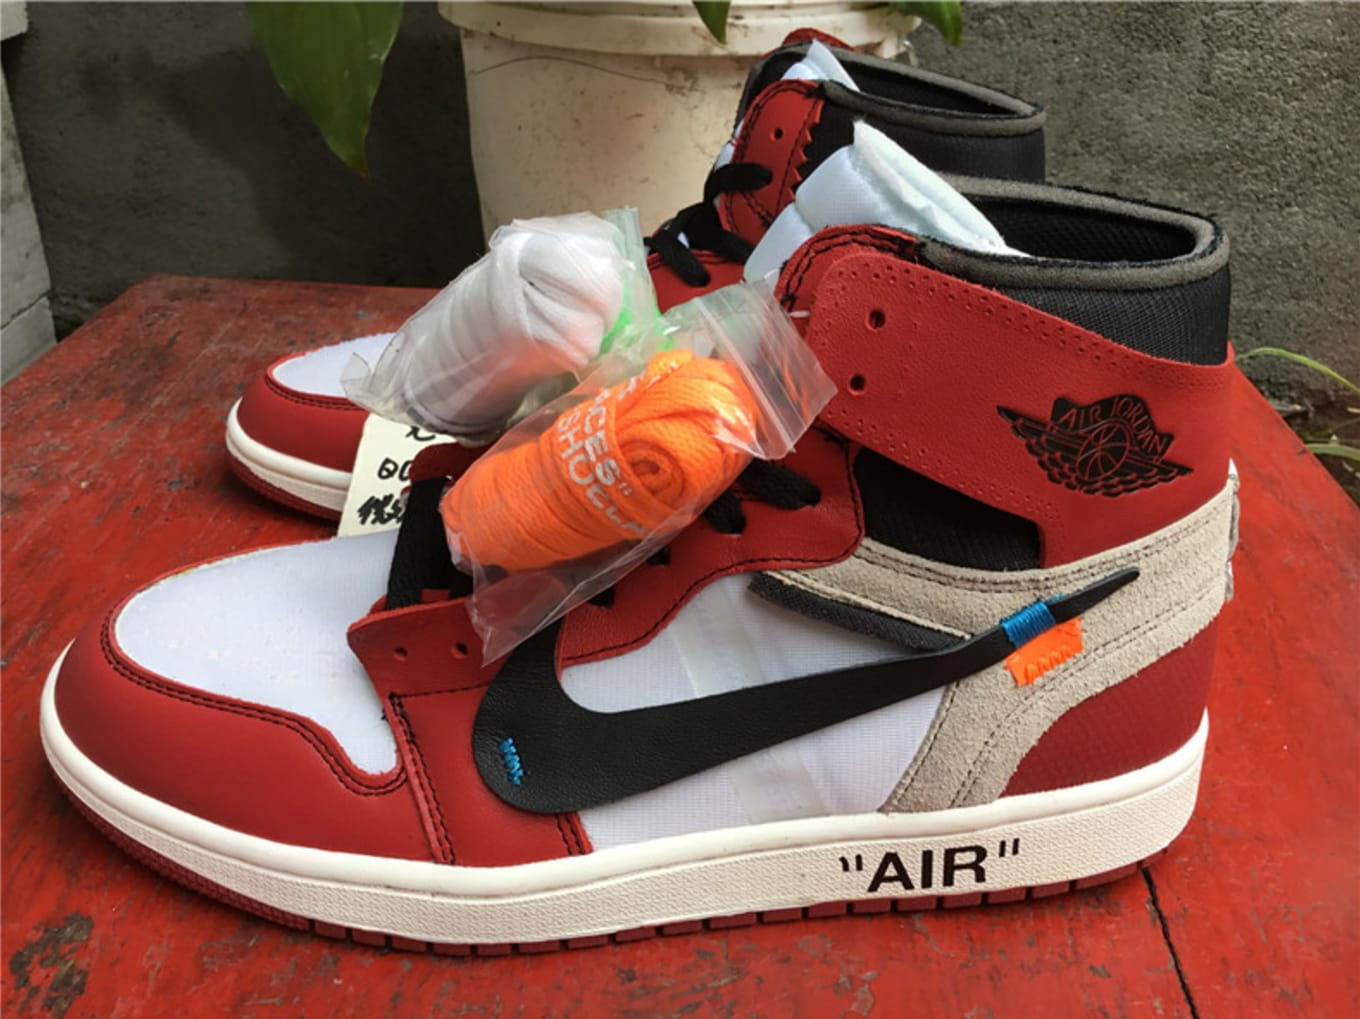 56cdb712659398 Off-White x Air Jordan 1 to Retail for  350  New information on the  collaboration.